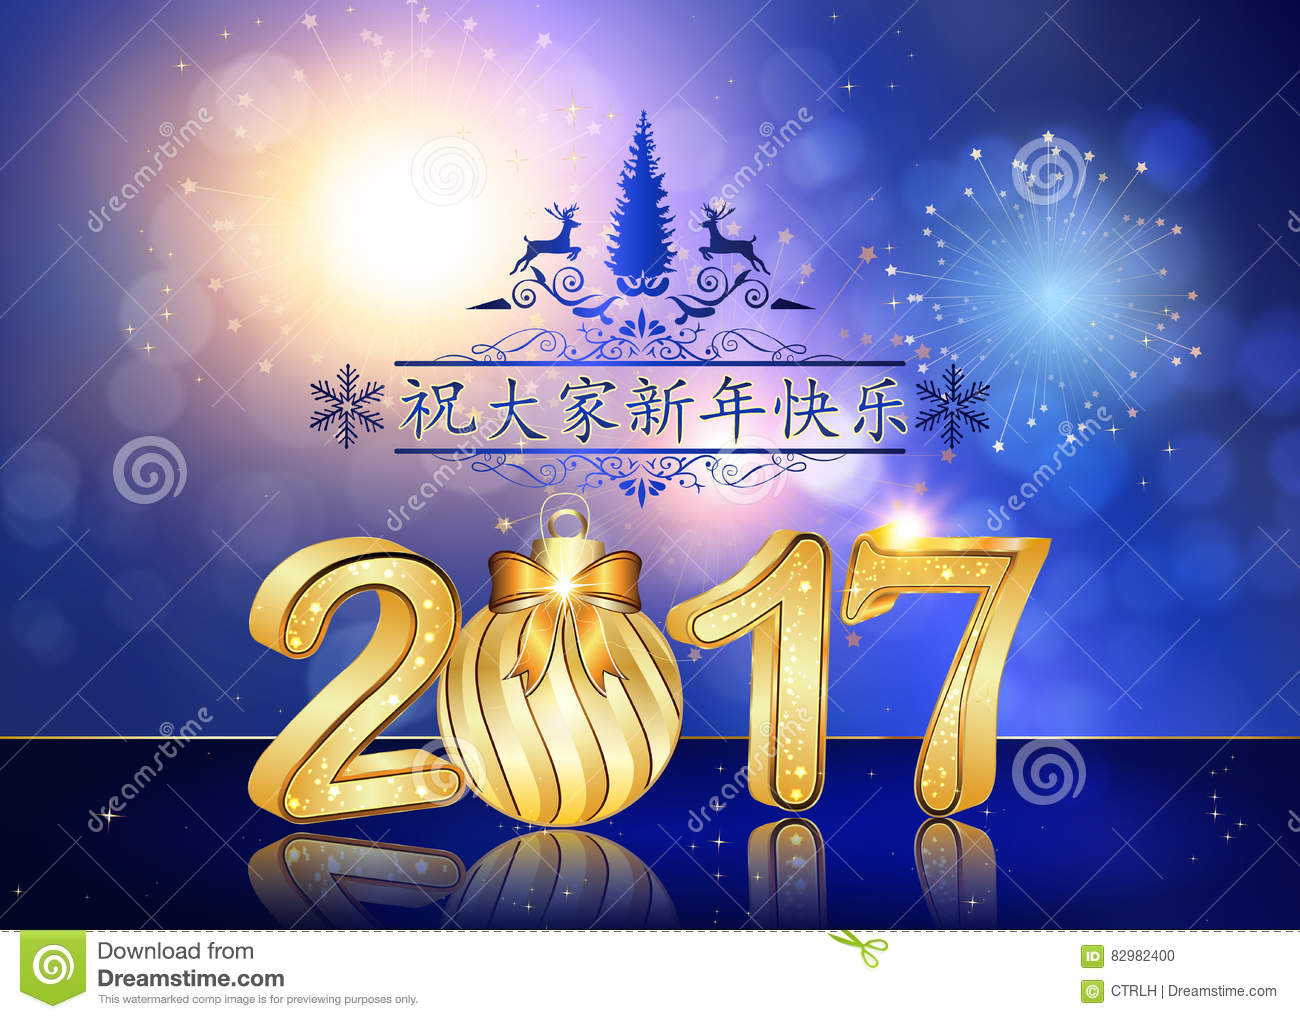 Happy new year 2017 chinese language stock illustration happy new year 2017 chinese language background greeting card with brightly colorful fireworks and colorful lights on twilight background m4hsunfo